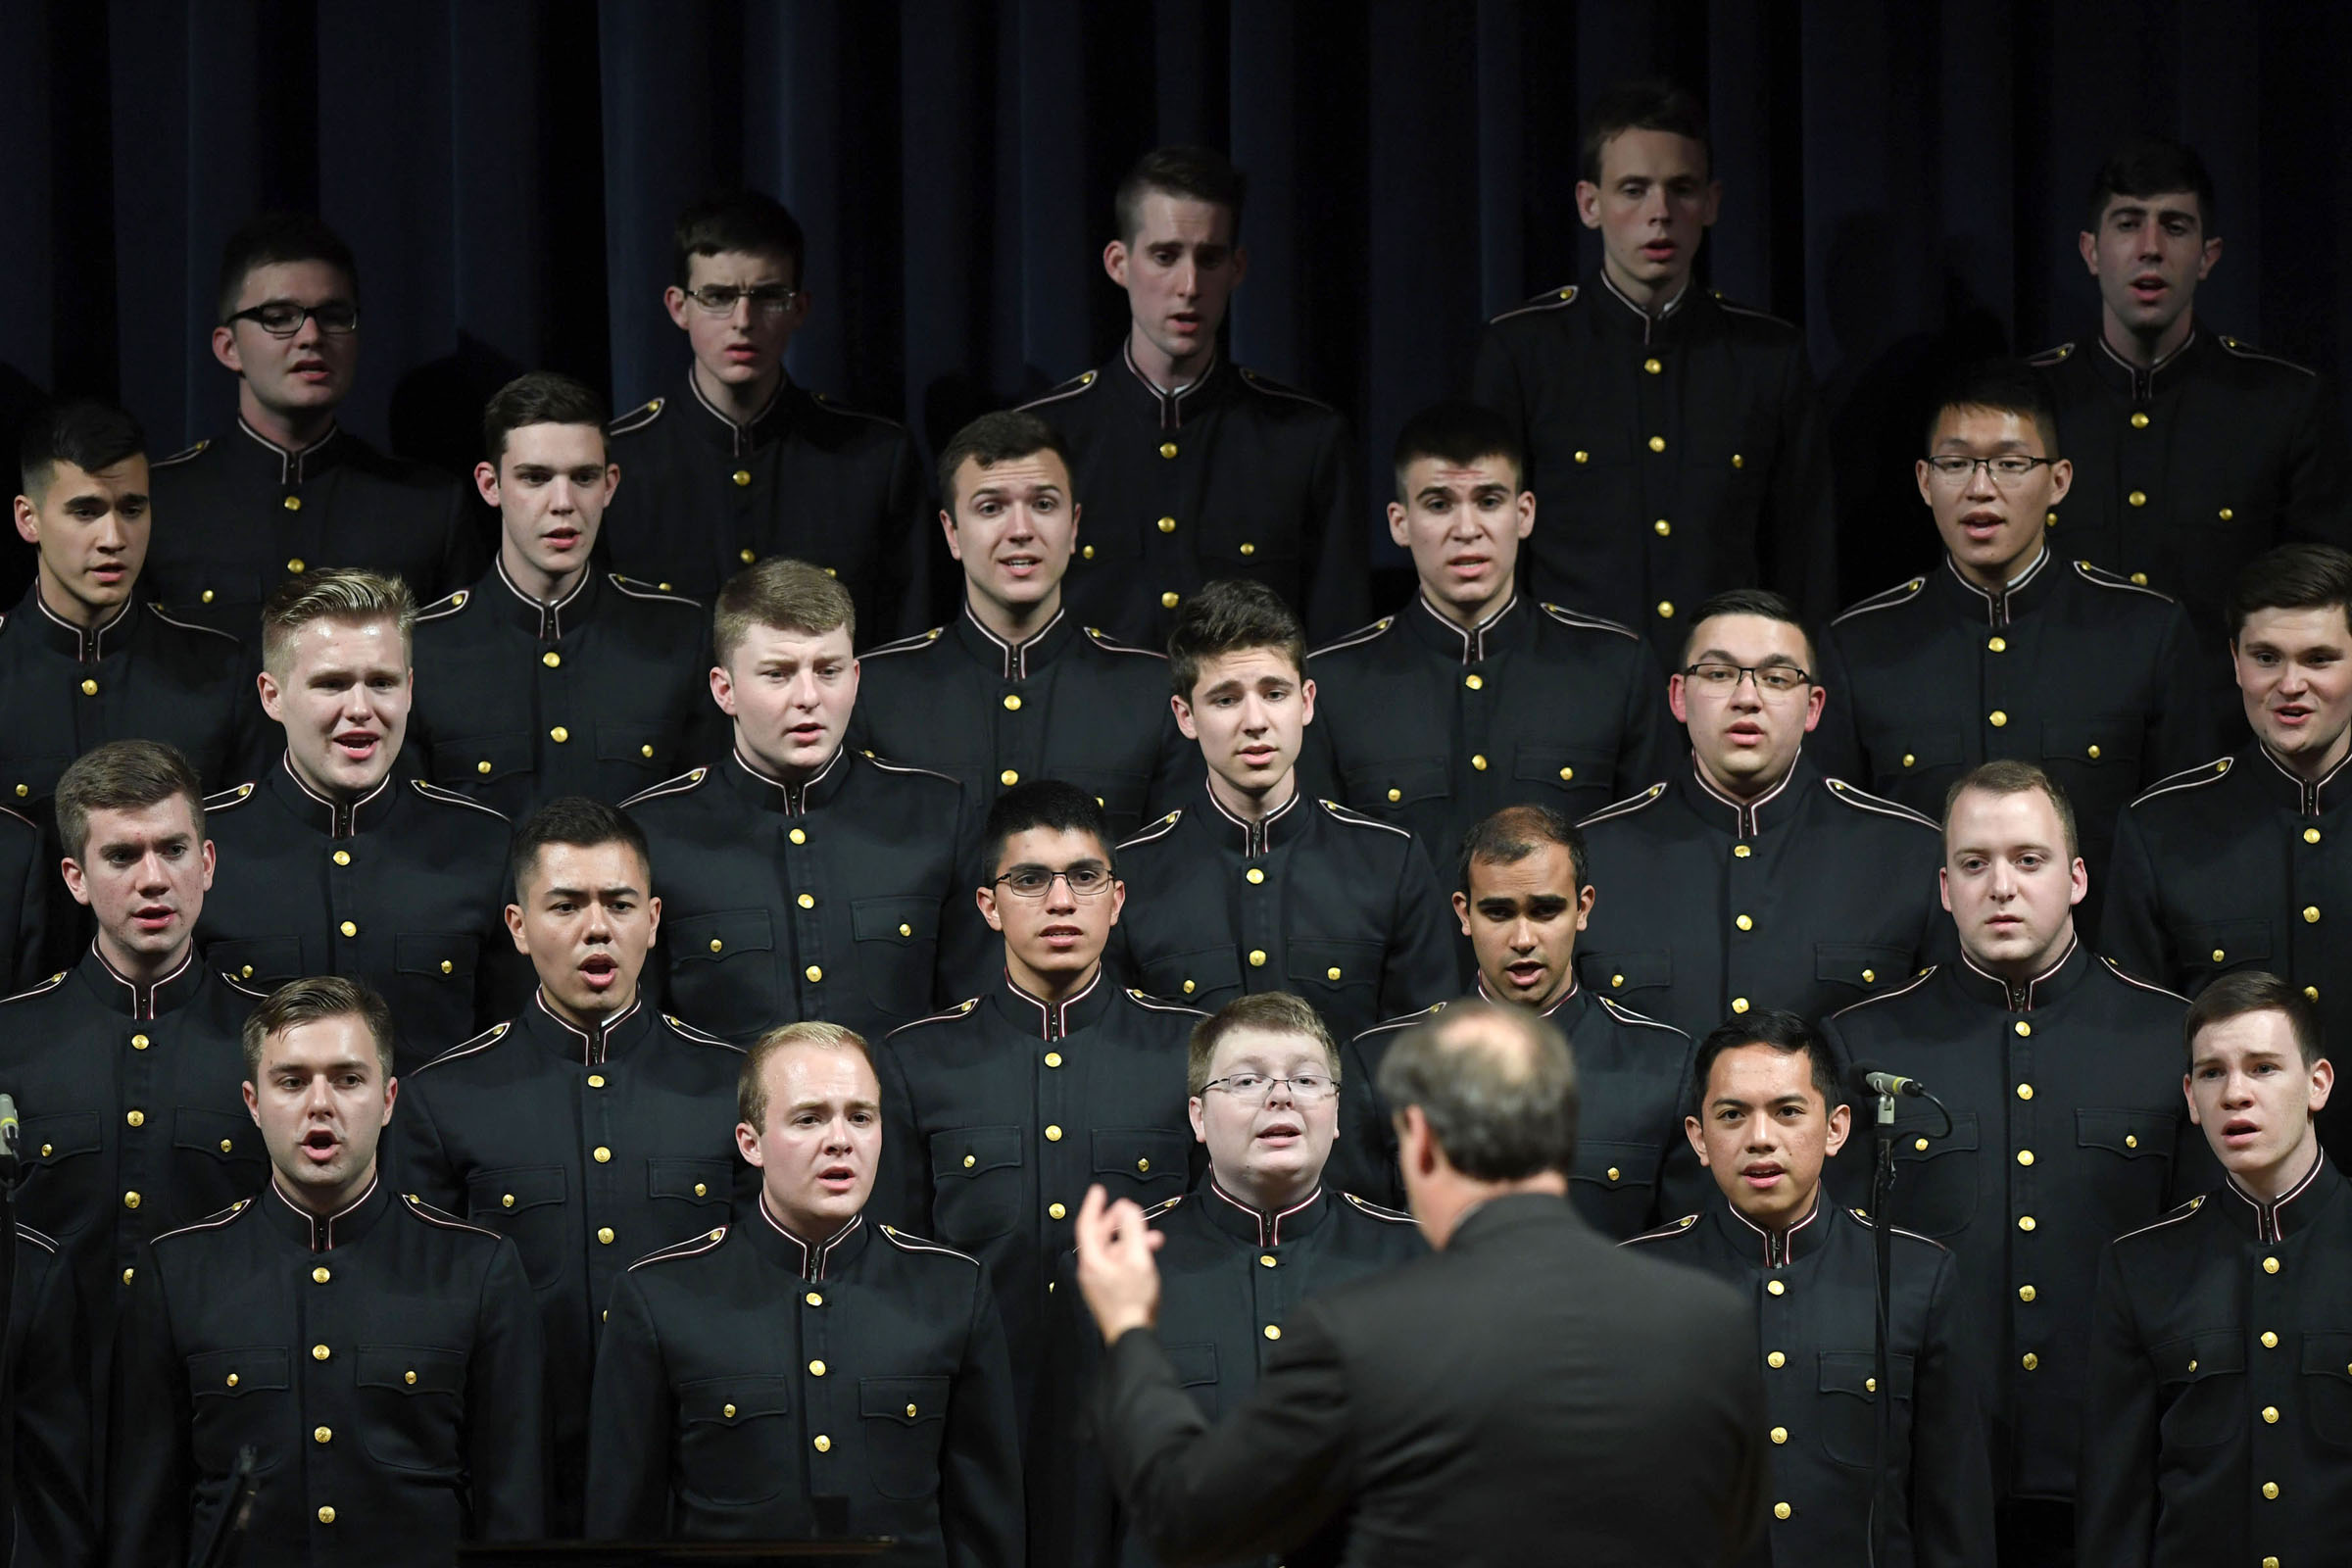 Texas A&M's Singing Cadets perform during a combined concert with the Women's Chorus, Harvard Glee Club and Radcliffe Choral Society at the Annenberg Presidential Conference Center on Jan. 23, 2019, in College Station, Texas. (Laura McKenzie/The Eagle)